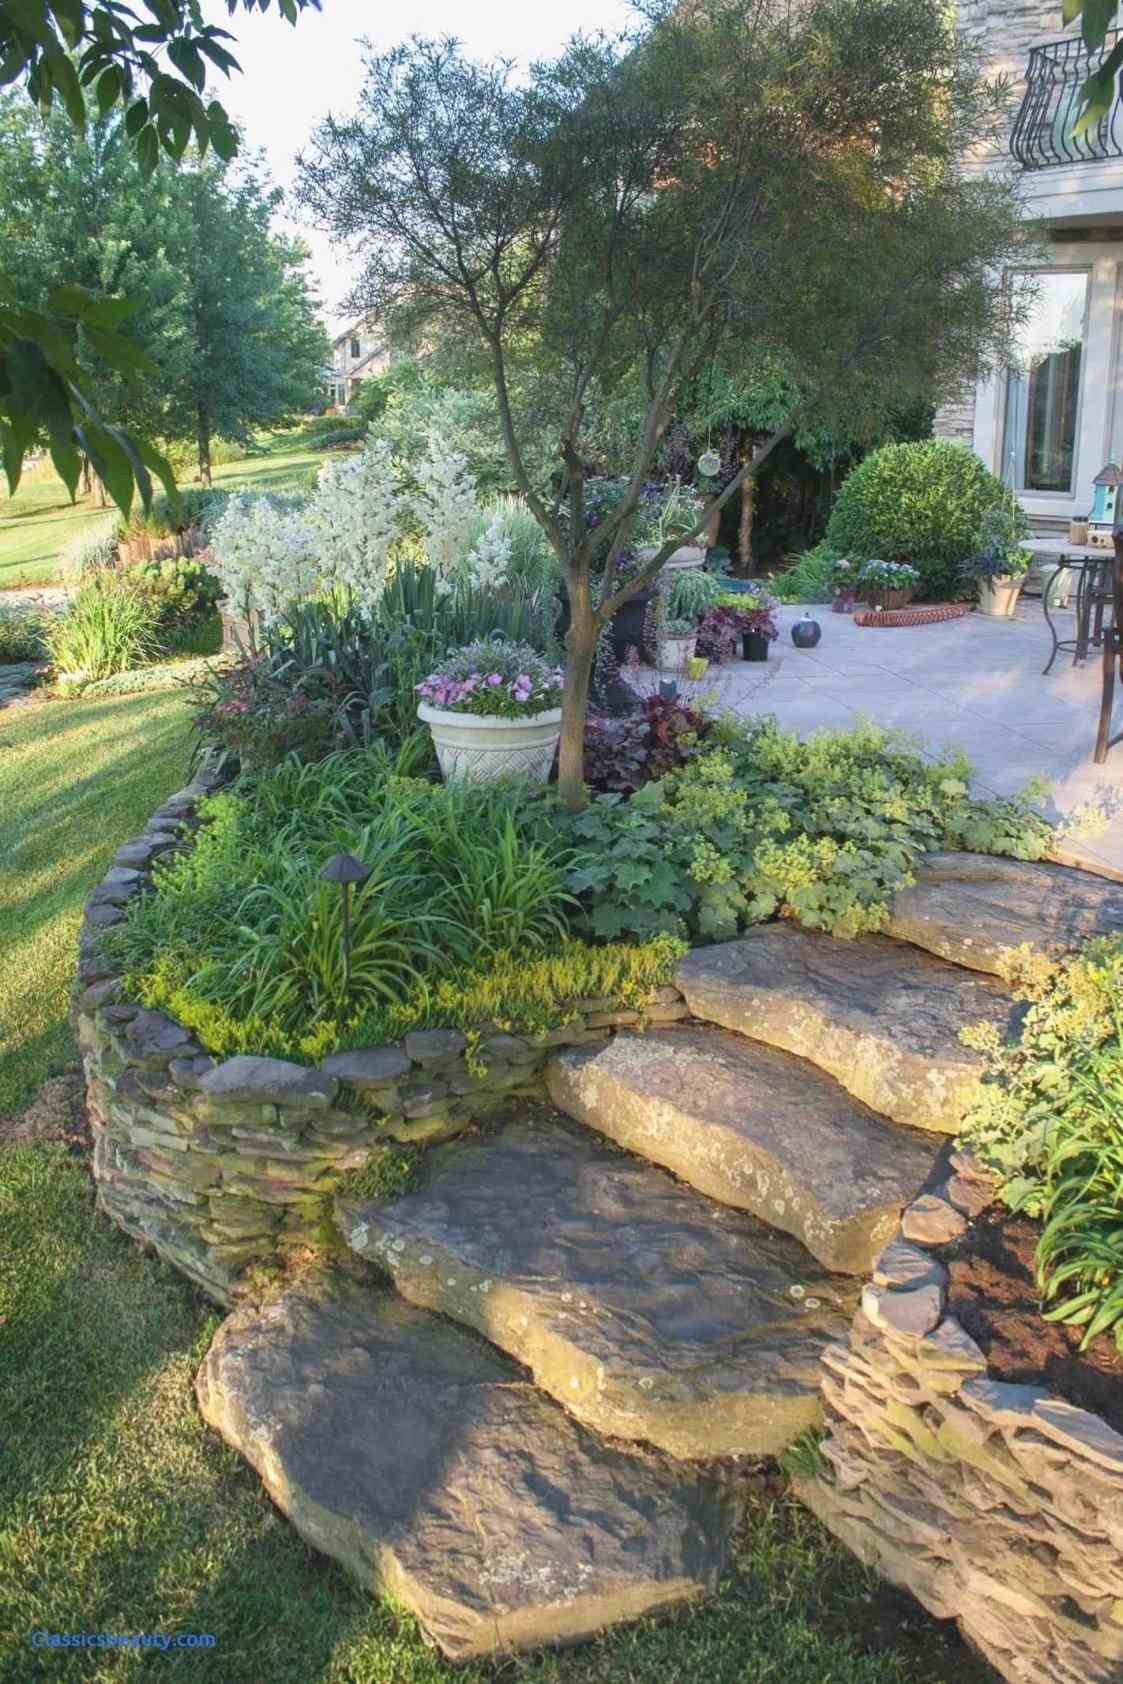 Backyard Landscaping Sloped Yard Backyard Ideas For Sloping Yards with 10 Awesome Initiatives of How to Make Landscaping Sloping Backyard Ideas